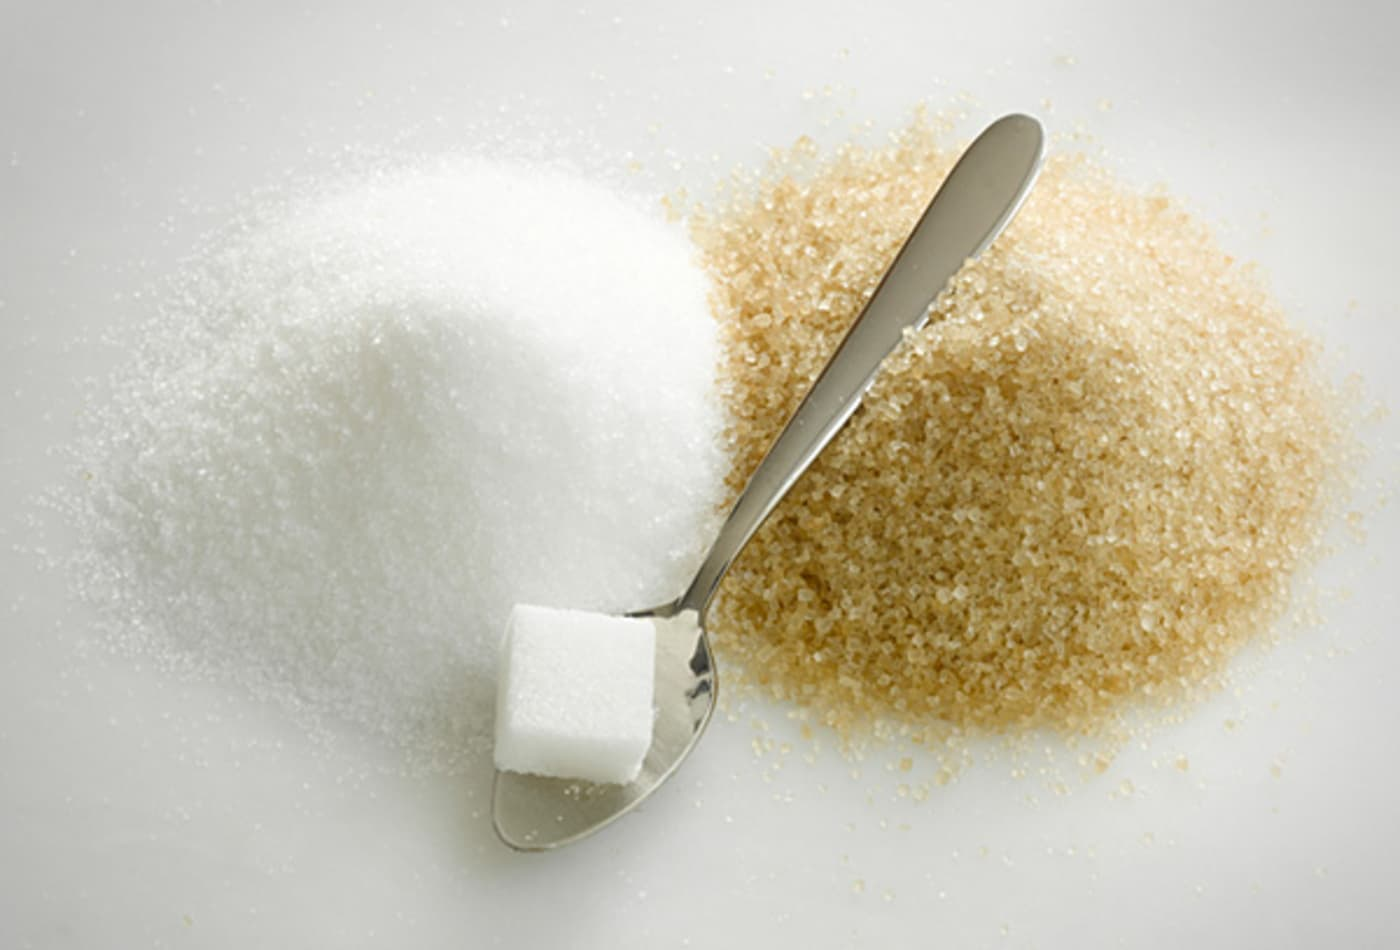 CNBC_commodities_biggest_price_moves_sugar.jpg